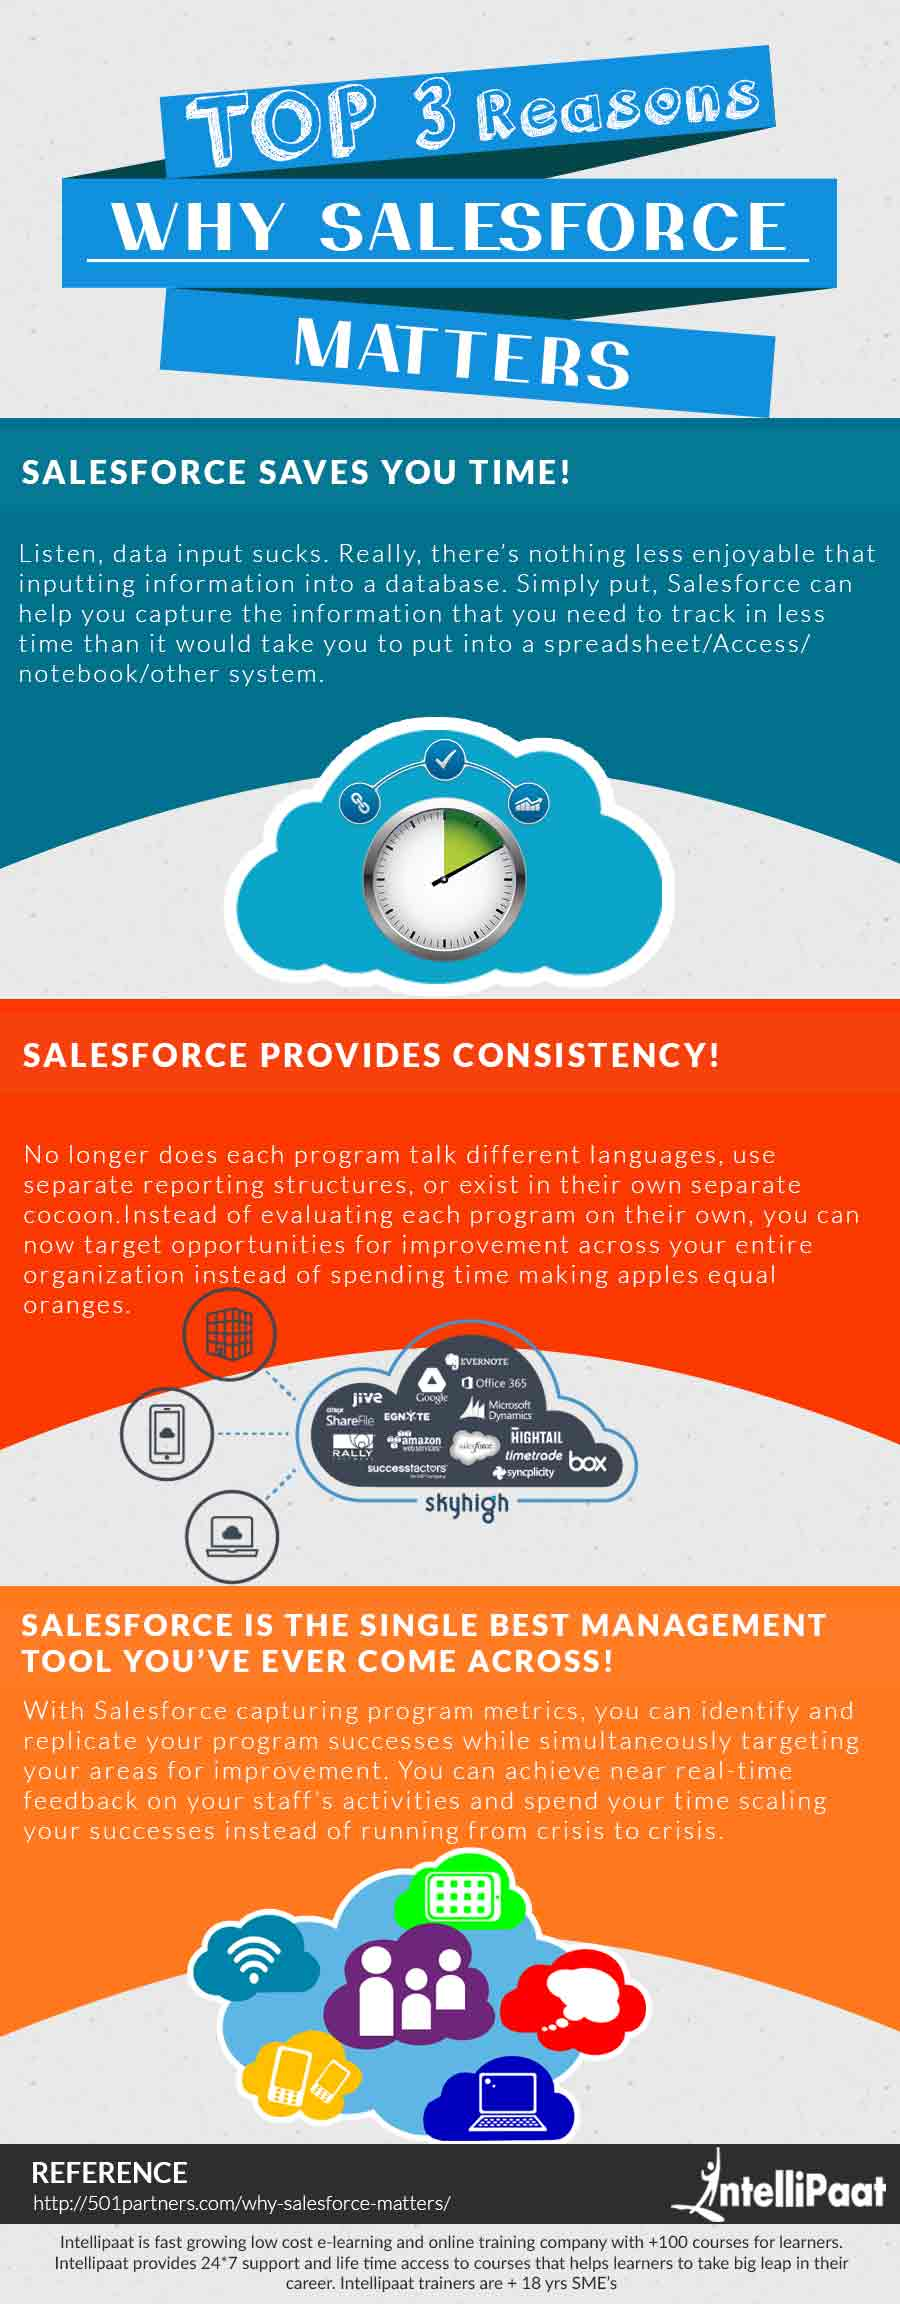 Top-3-reasons-why-Salesforce-matters